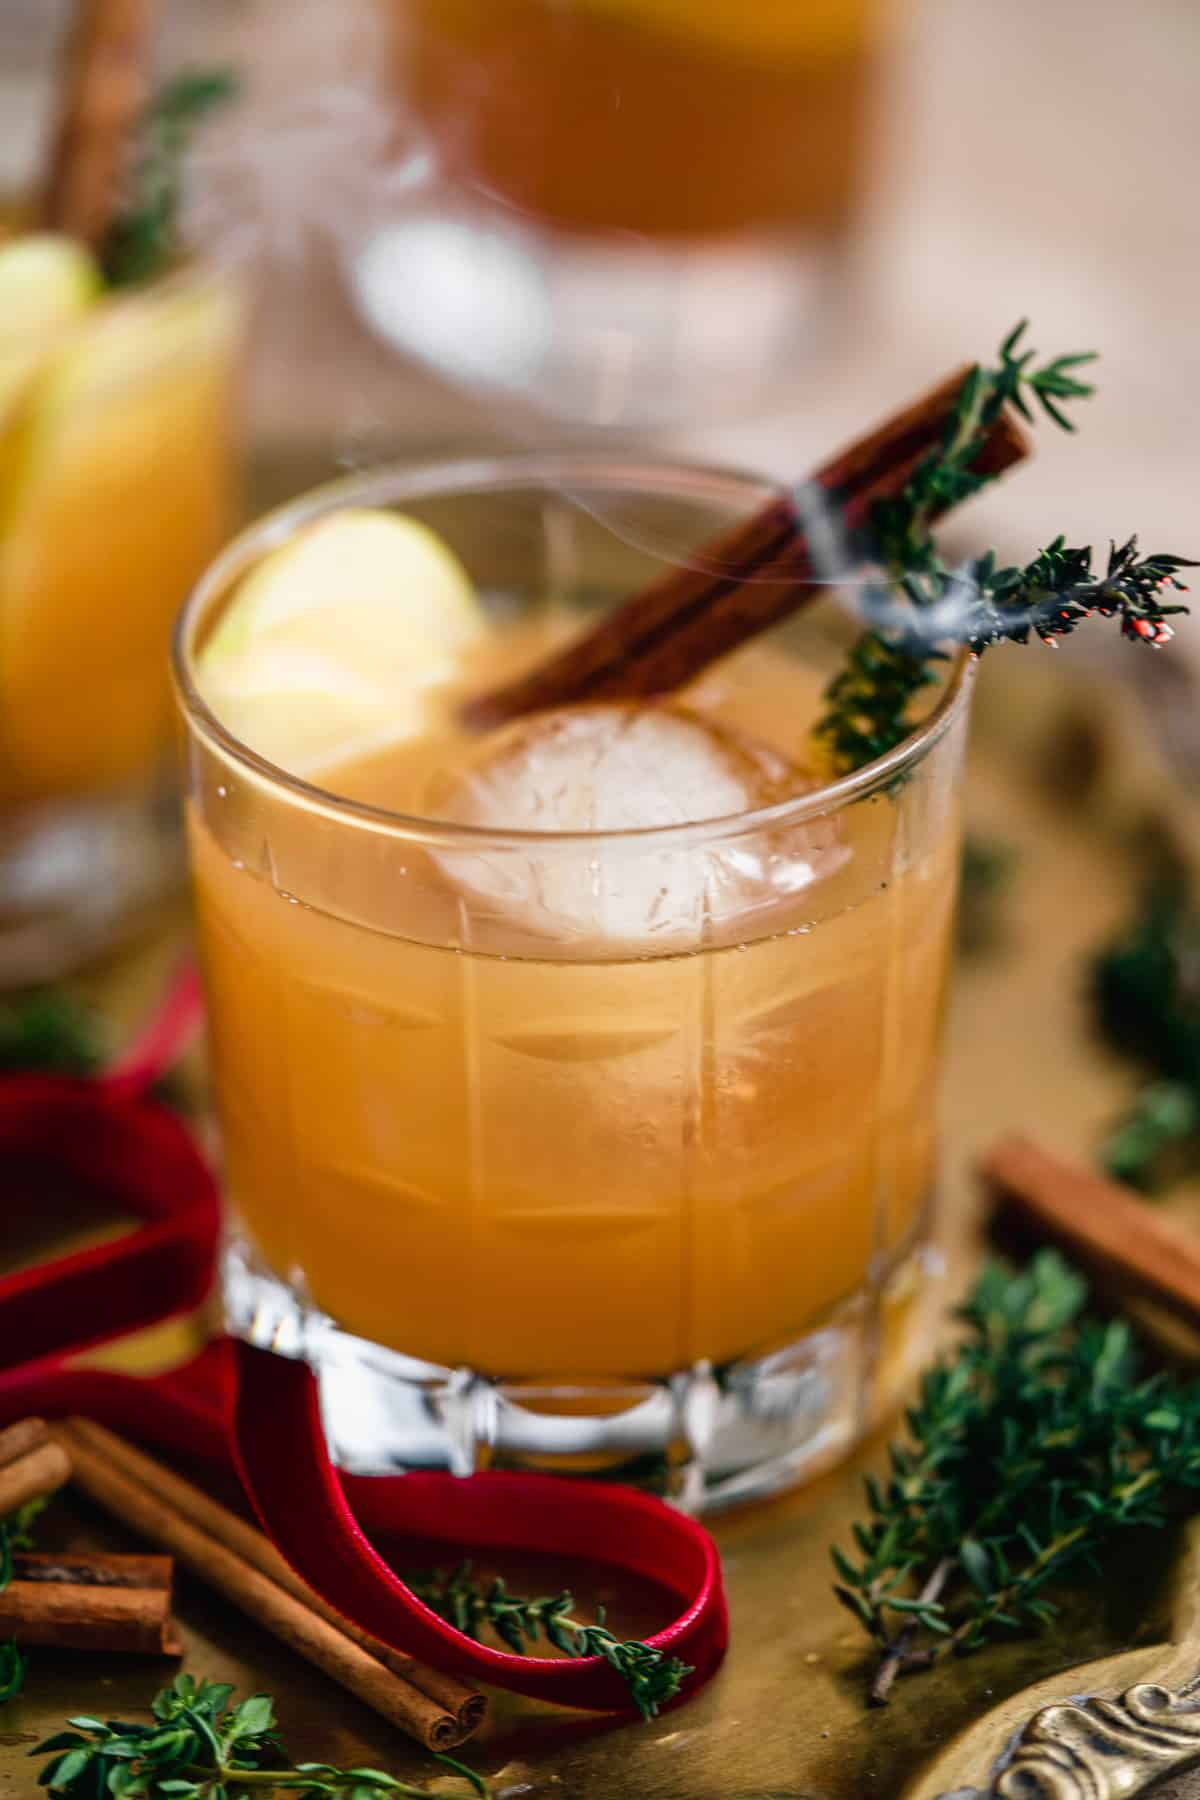 Close up photo of Smoked Cinnamon Apple Cider Bourbon Smash Cocktail in a cut crystal glass over ice with a cinnamon stick and garnish.